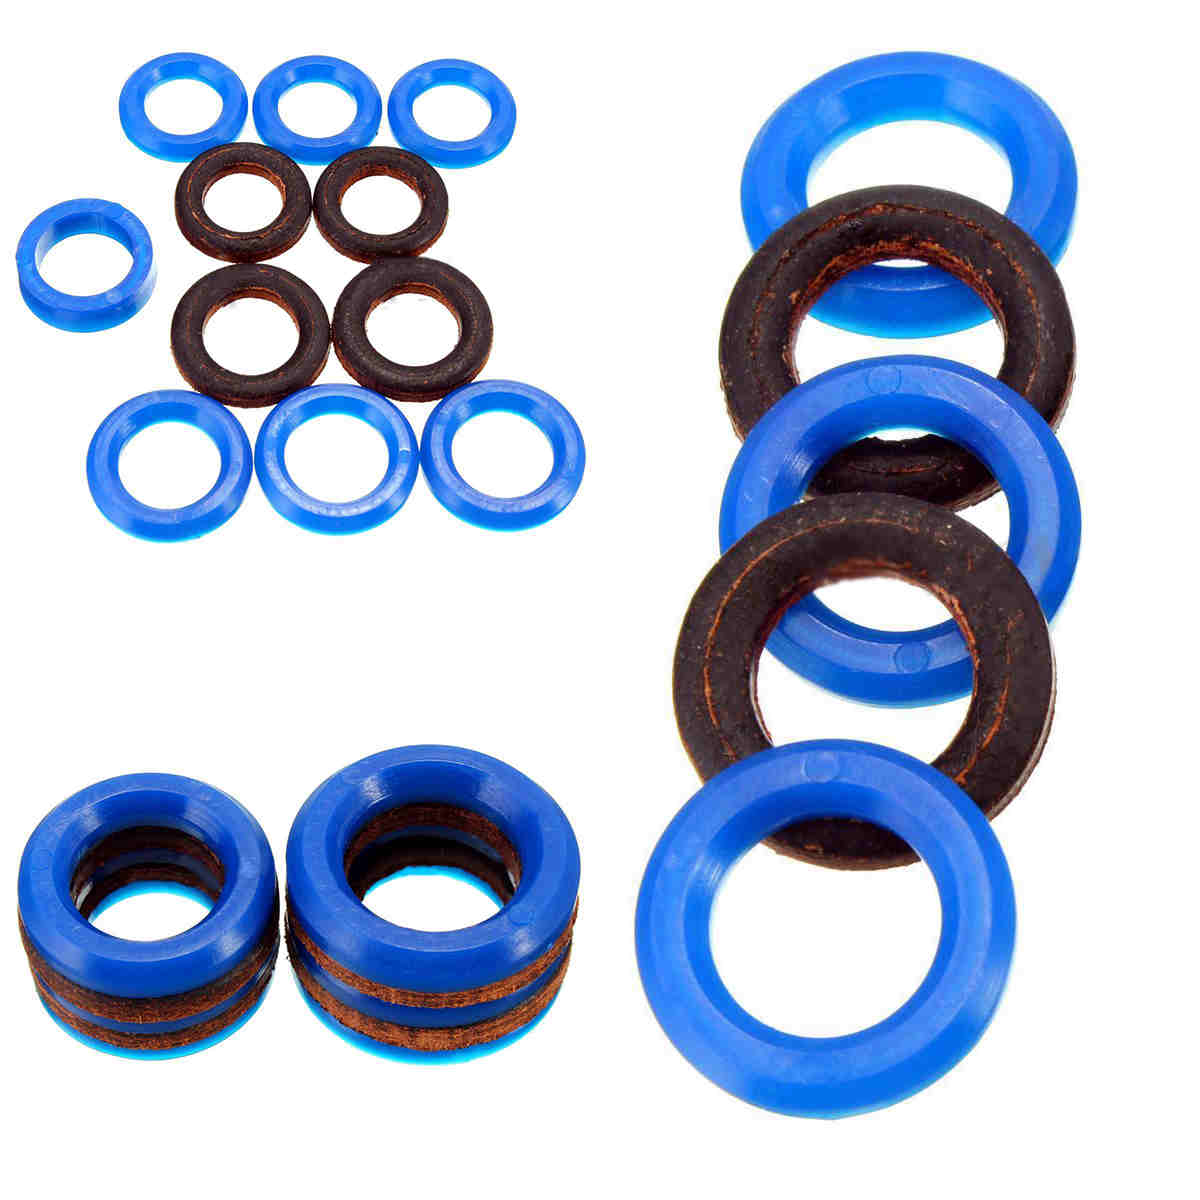 OSSIEAO 11Pcs Airless Spray Seal Ring Repair Set 244194 For Spraying Machine Blue&Black